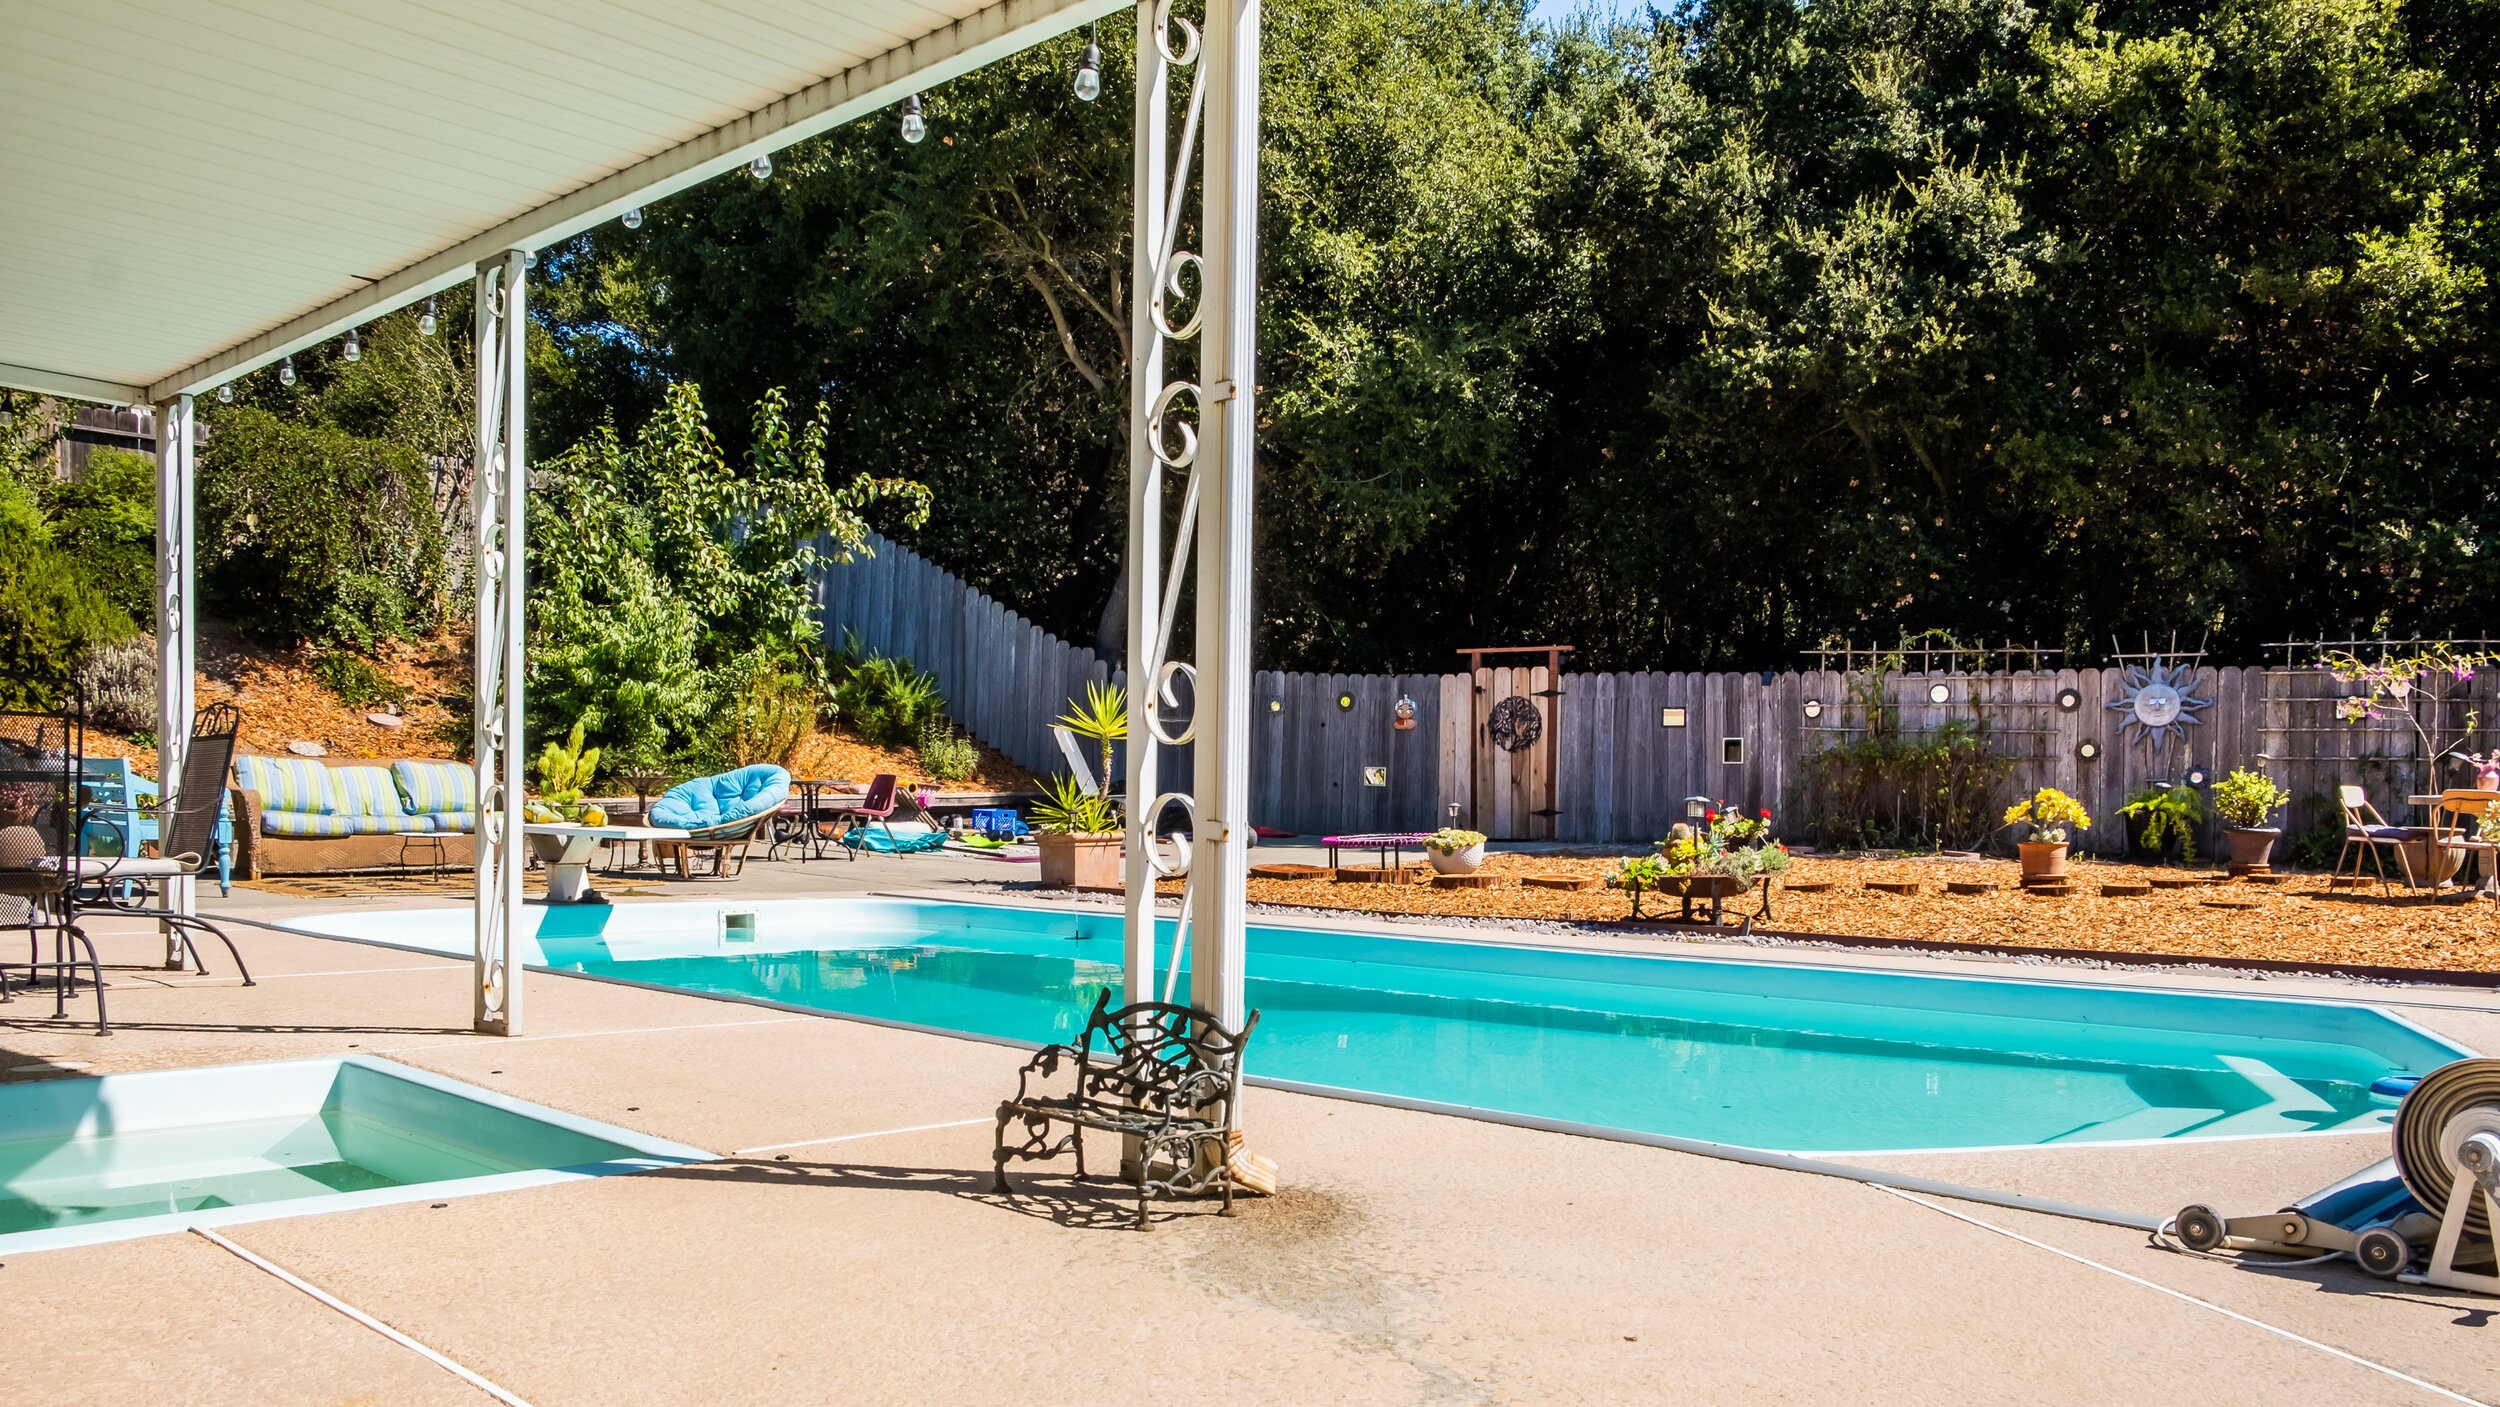 Private Oasis - a quiet and peaceful stay